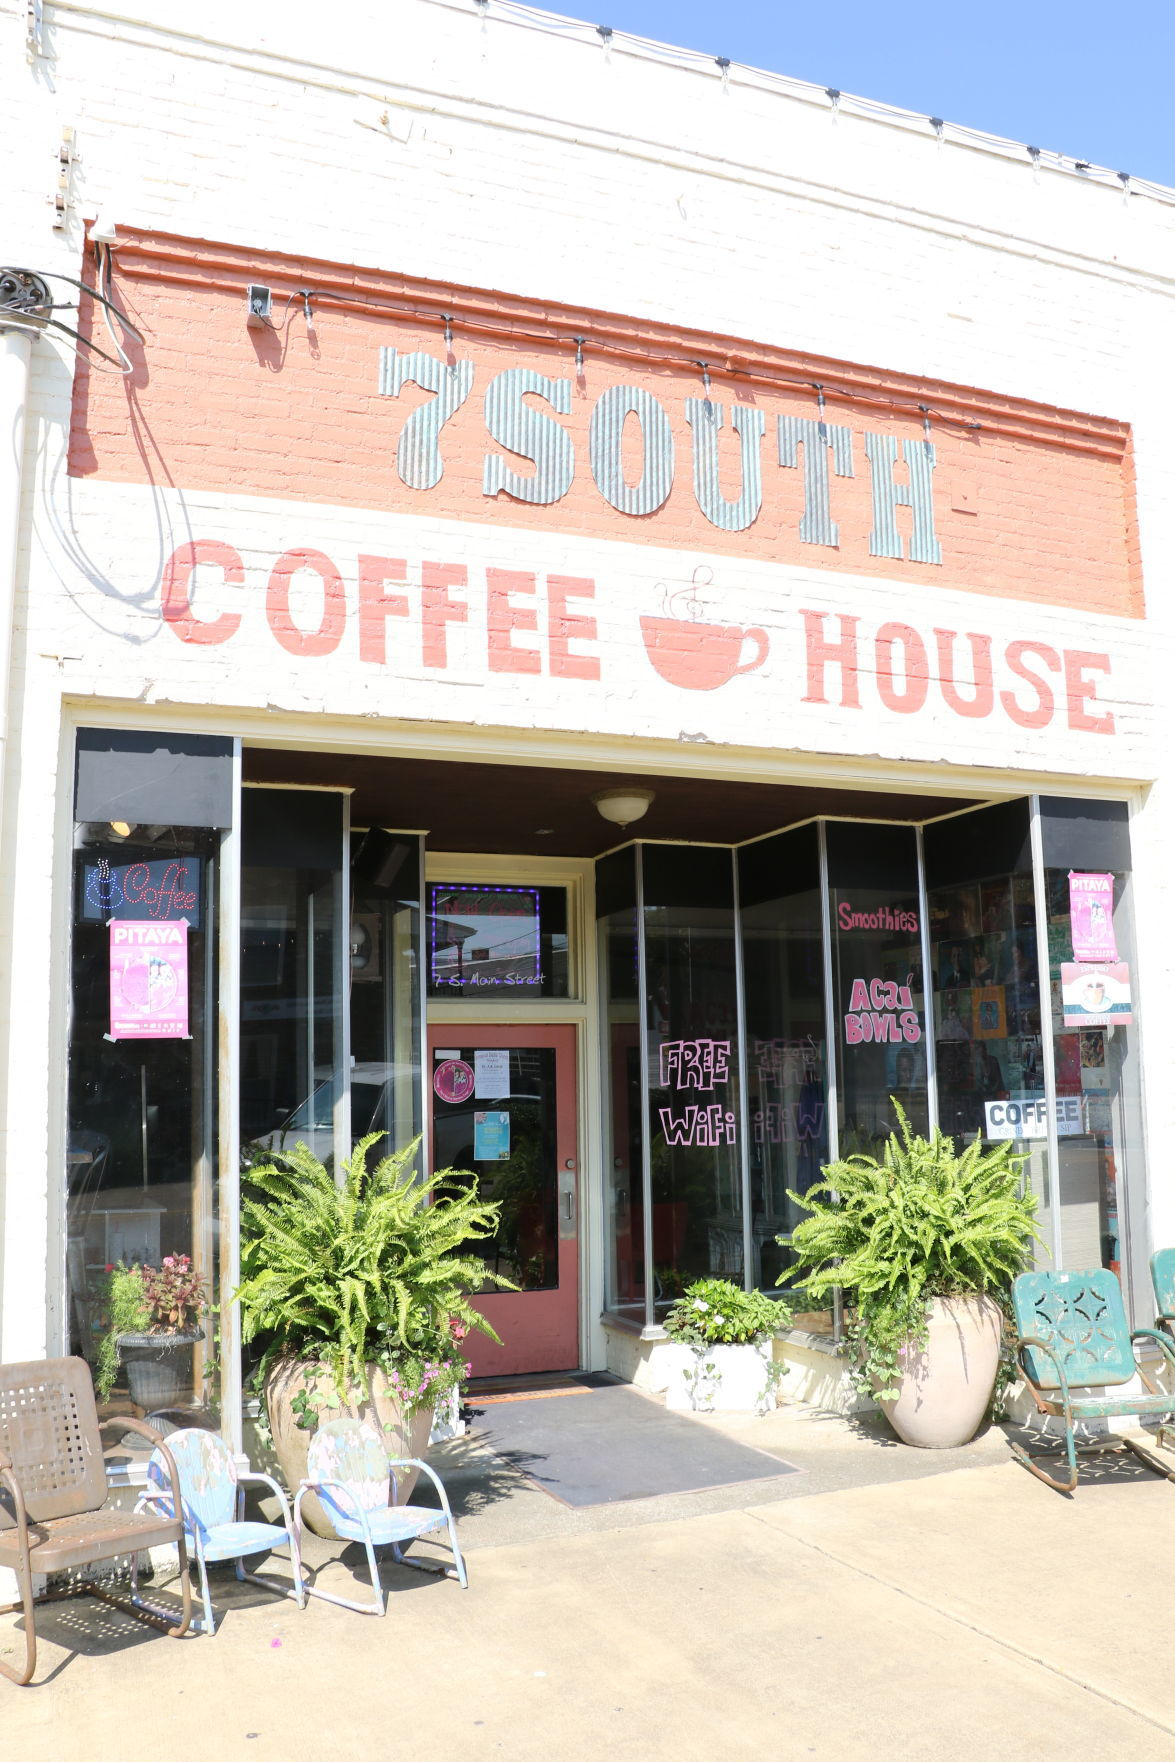 7South Coffee Shop welcomes diversity, inclusion and